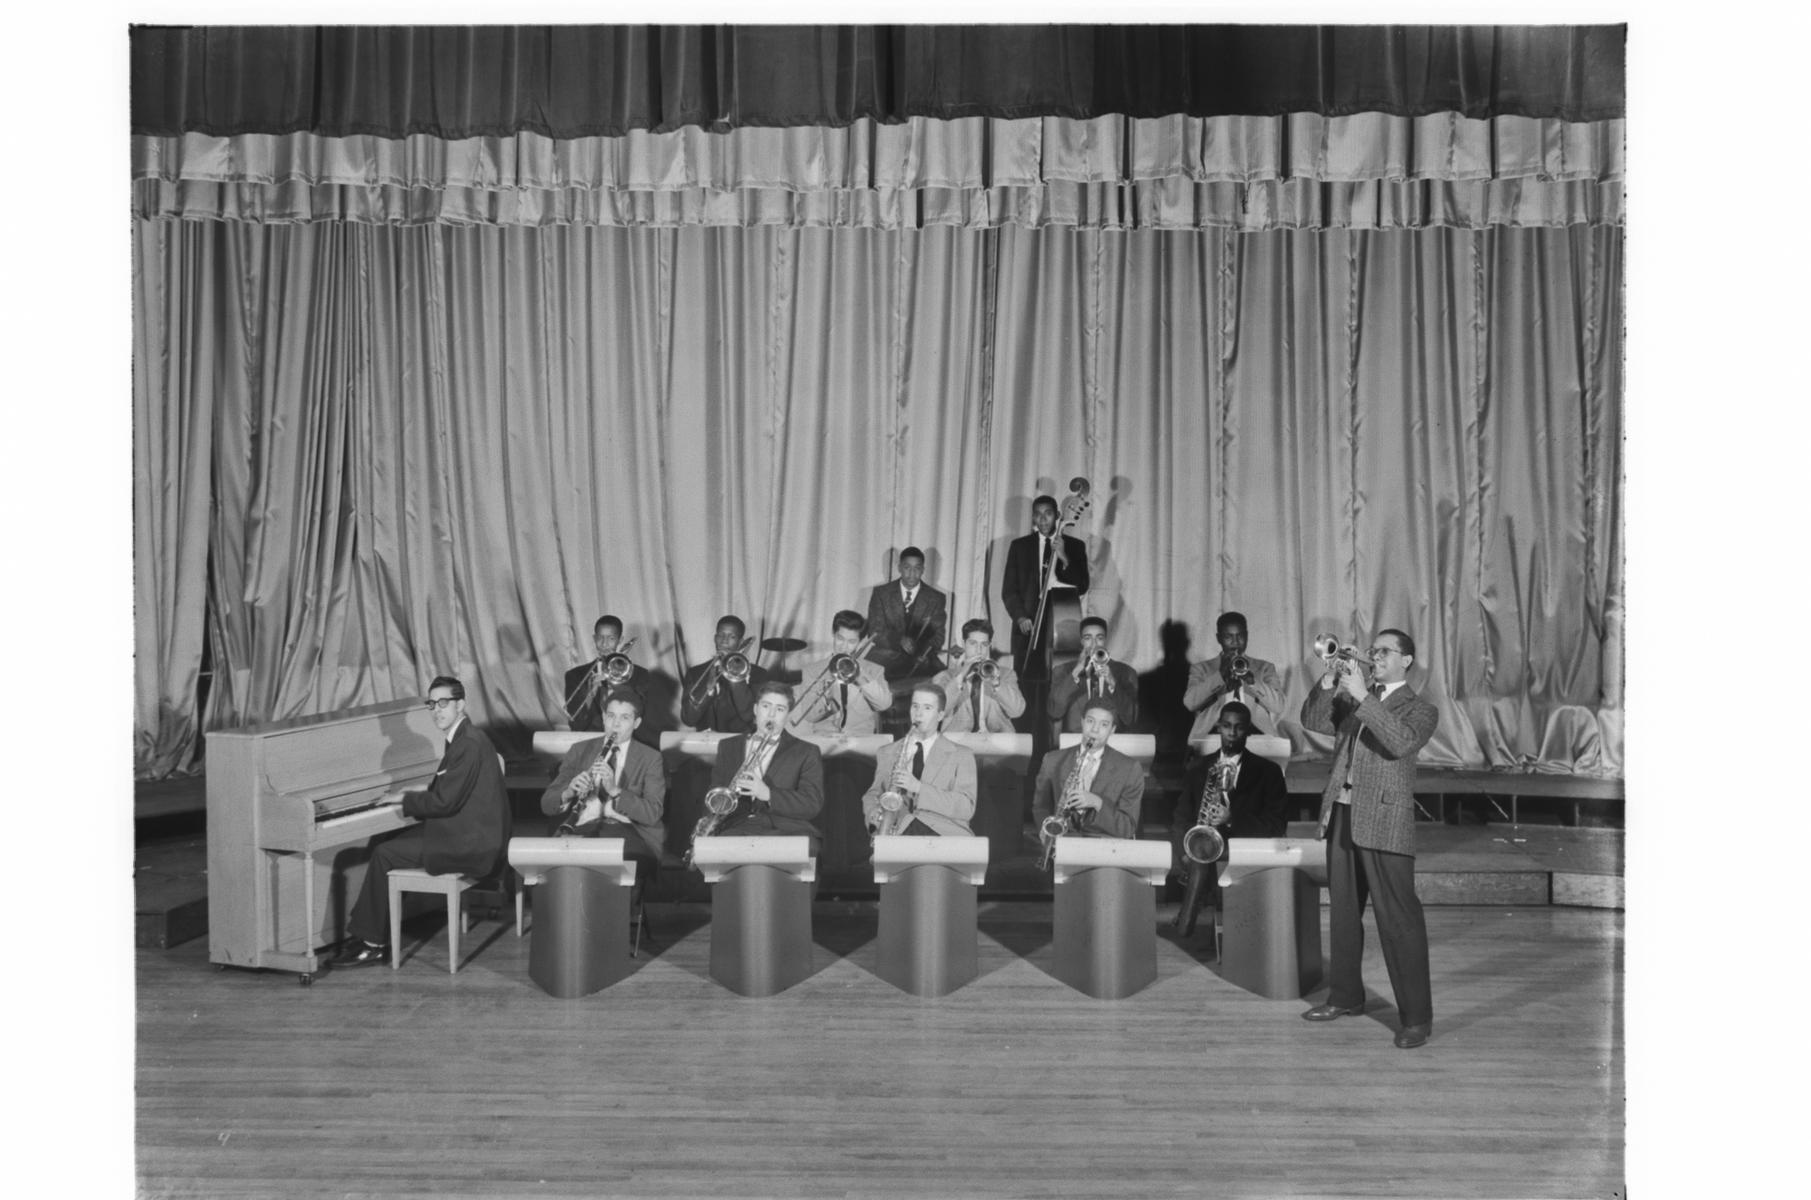 Hyde Park High School Dance Band, South Parkway; players posing as if playing